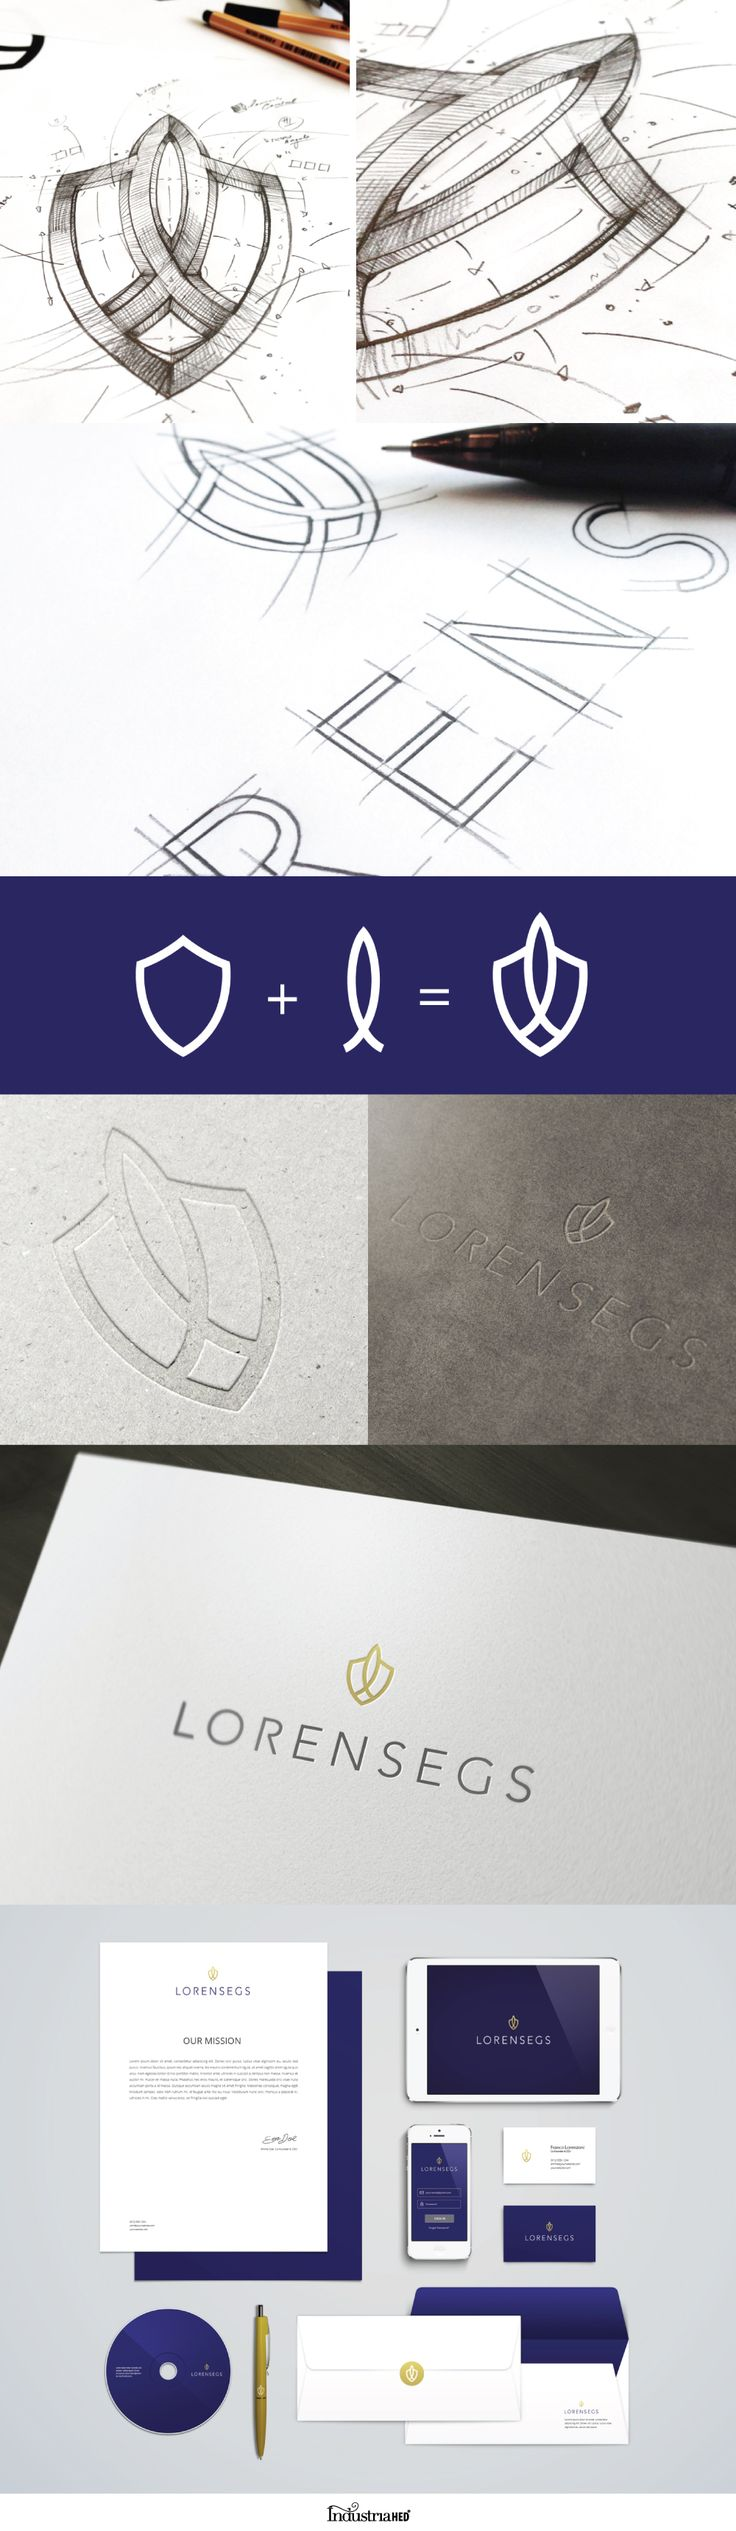 LORENSEGS // Insurance Company Identity by IndustriaHED (via Creattica) | #stationary #corporate #design #corporatedesign #identity #branding #marketing < repinned by www.BlickeDeeler.de | Visit our website: www.blickedeeler.de/leistungen/corporate-design